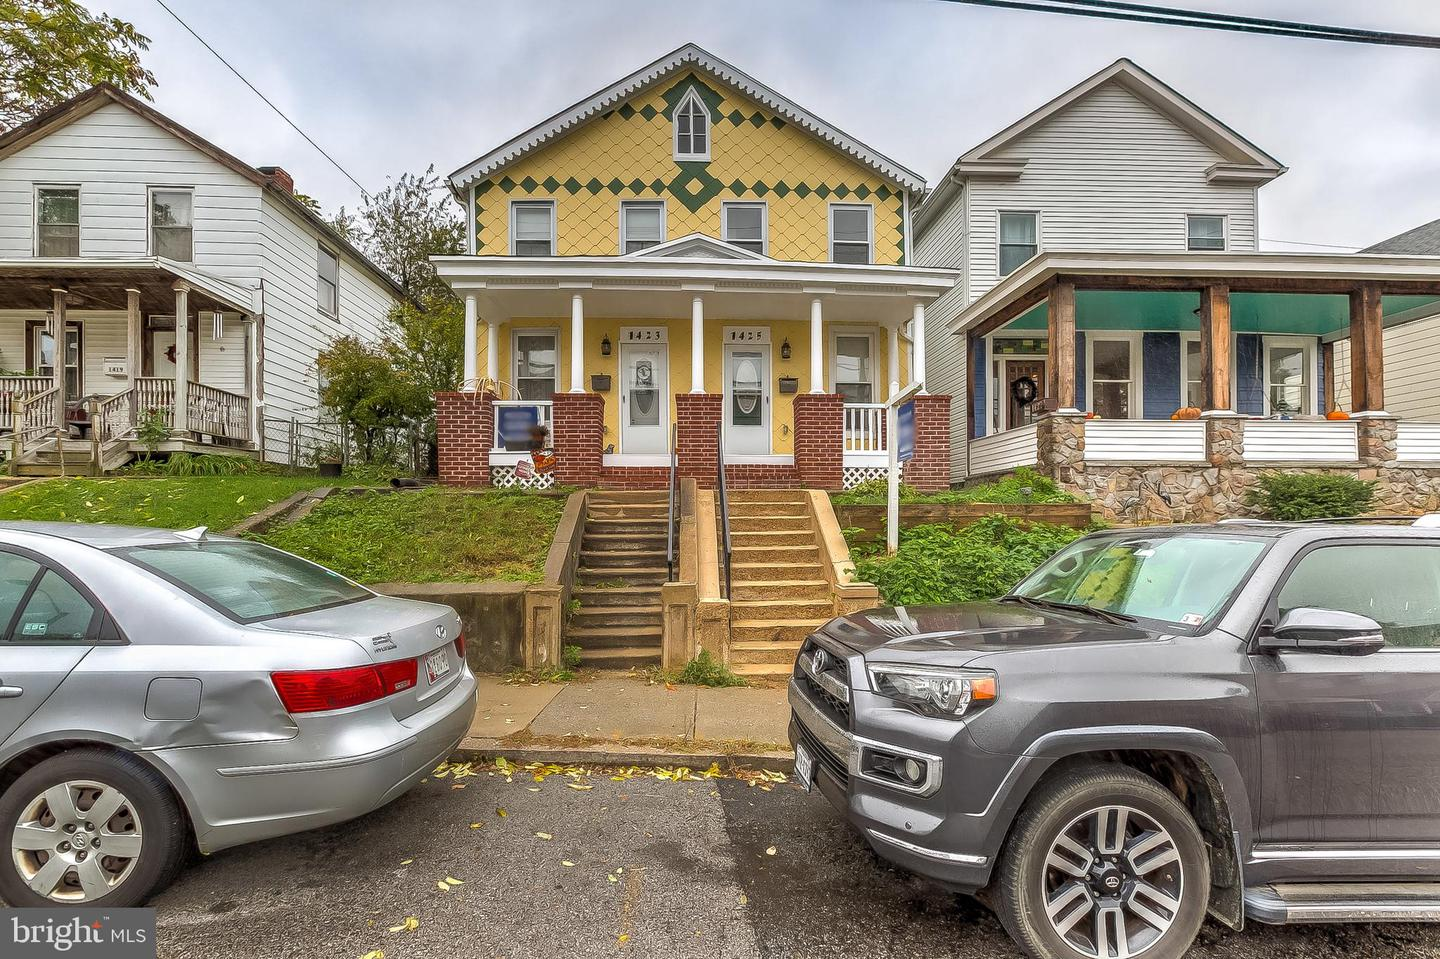 1425 36th Street   - Baltimore, Maryland 21211